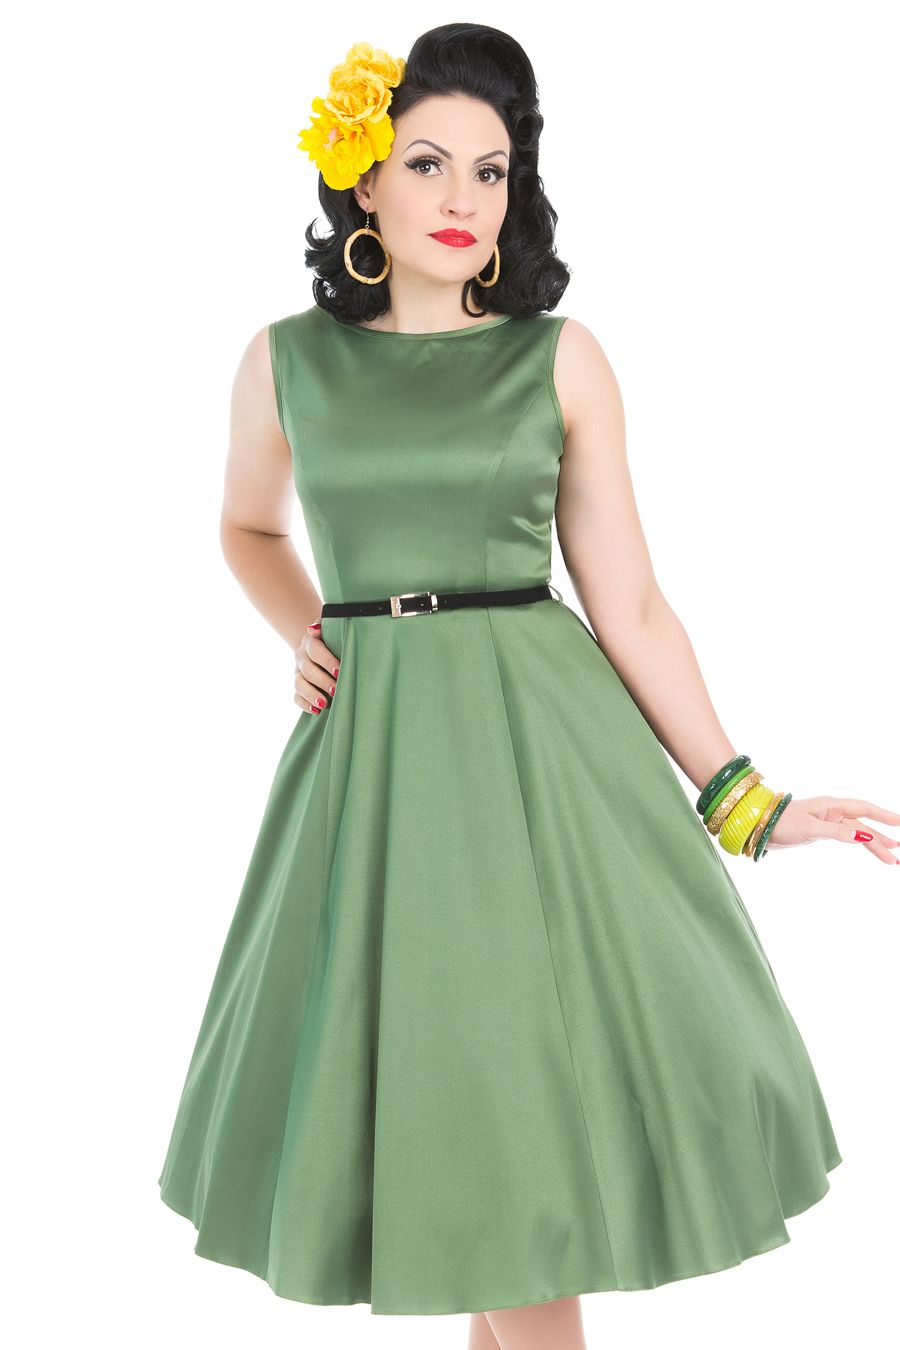 Hepburn dress english ivy vintage style dresses 1950s style hepburn dress english ivy ombrellifo Image collections